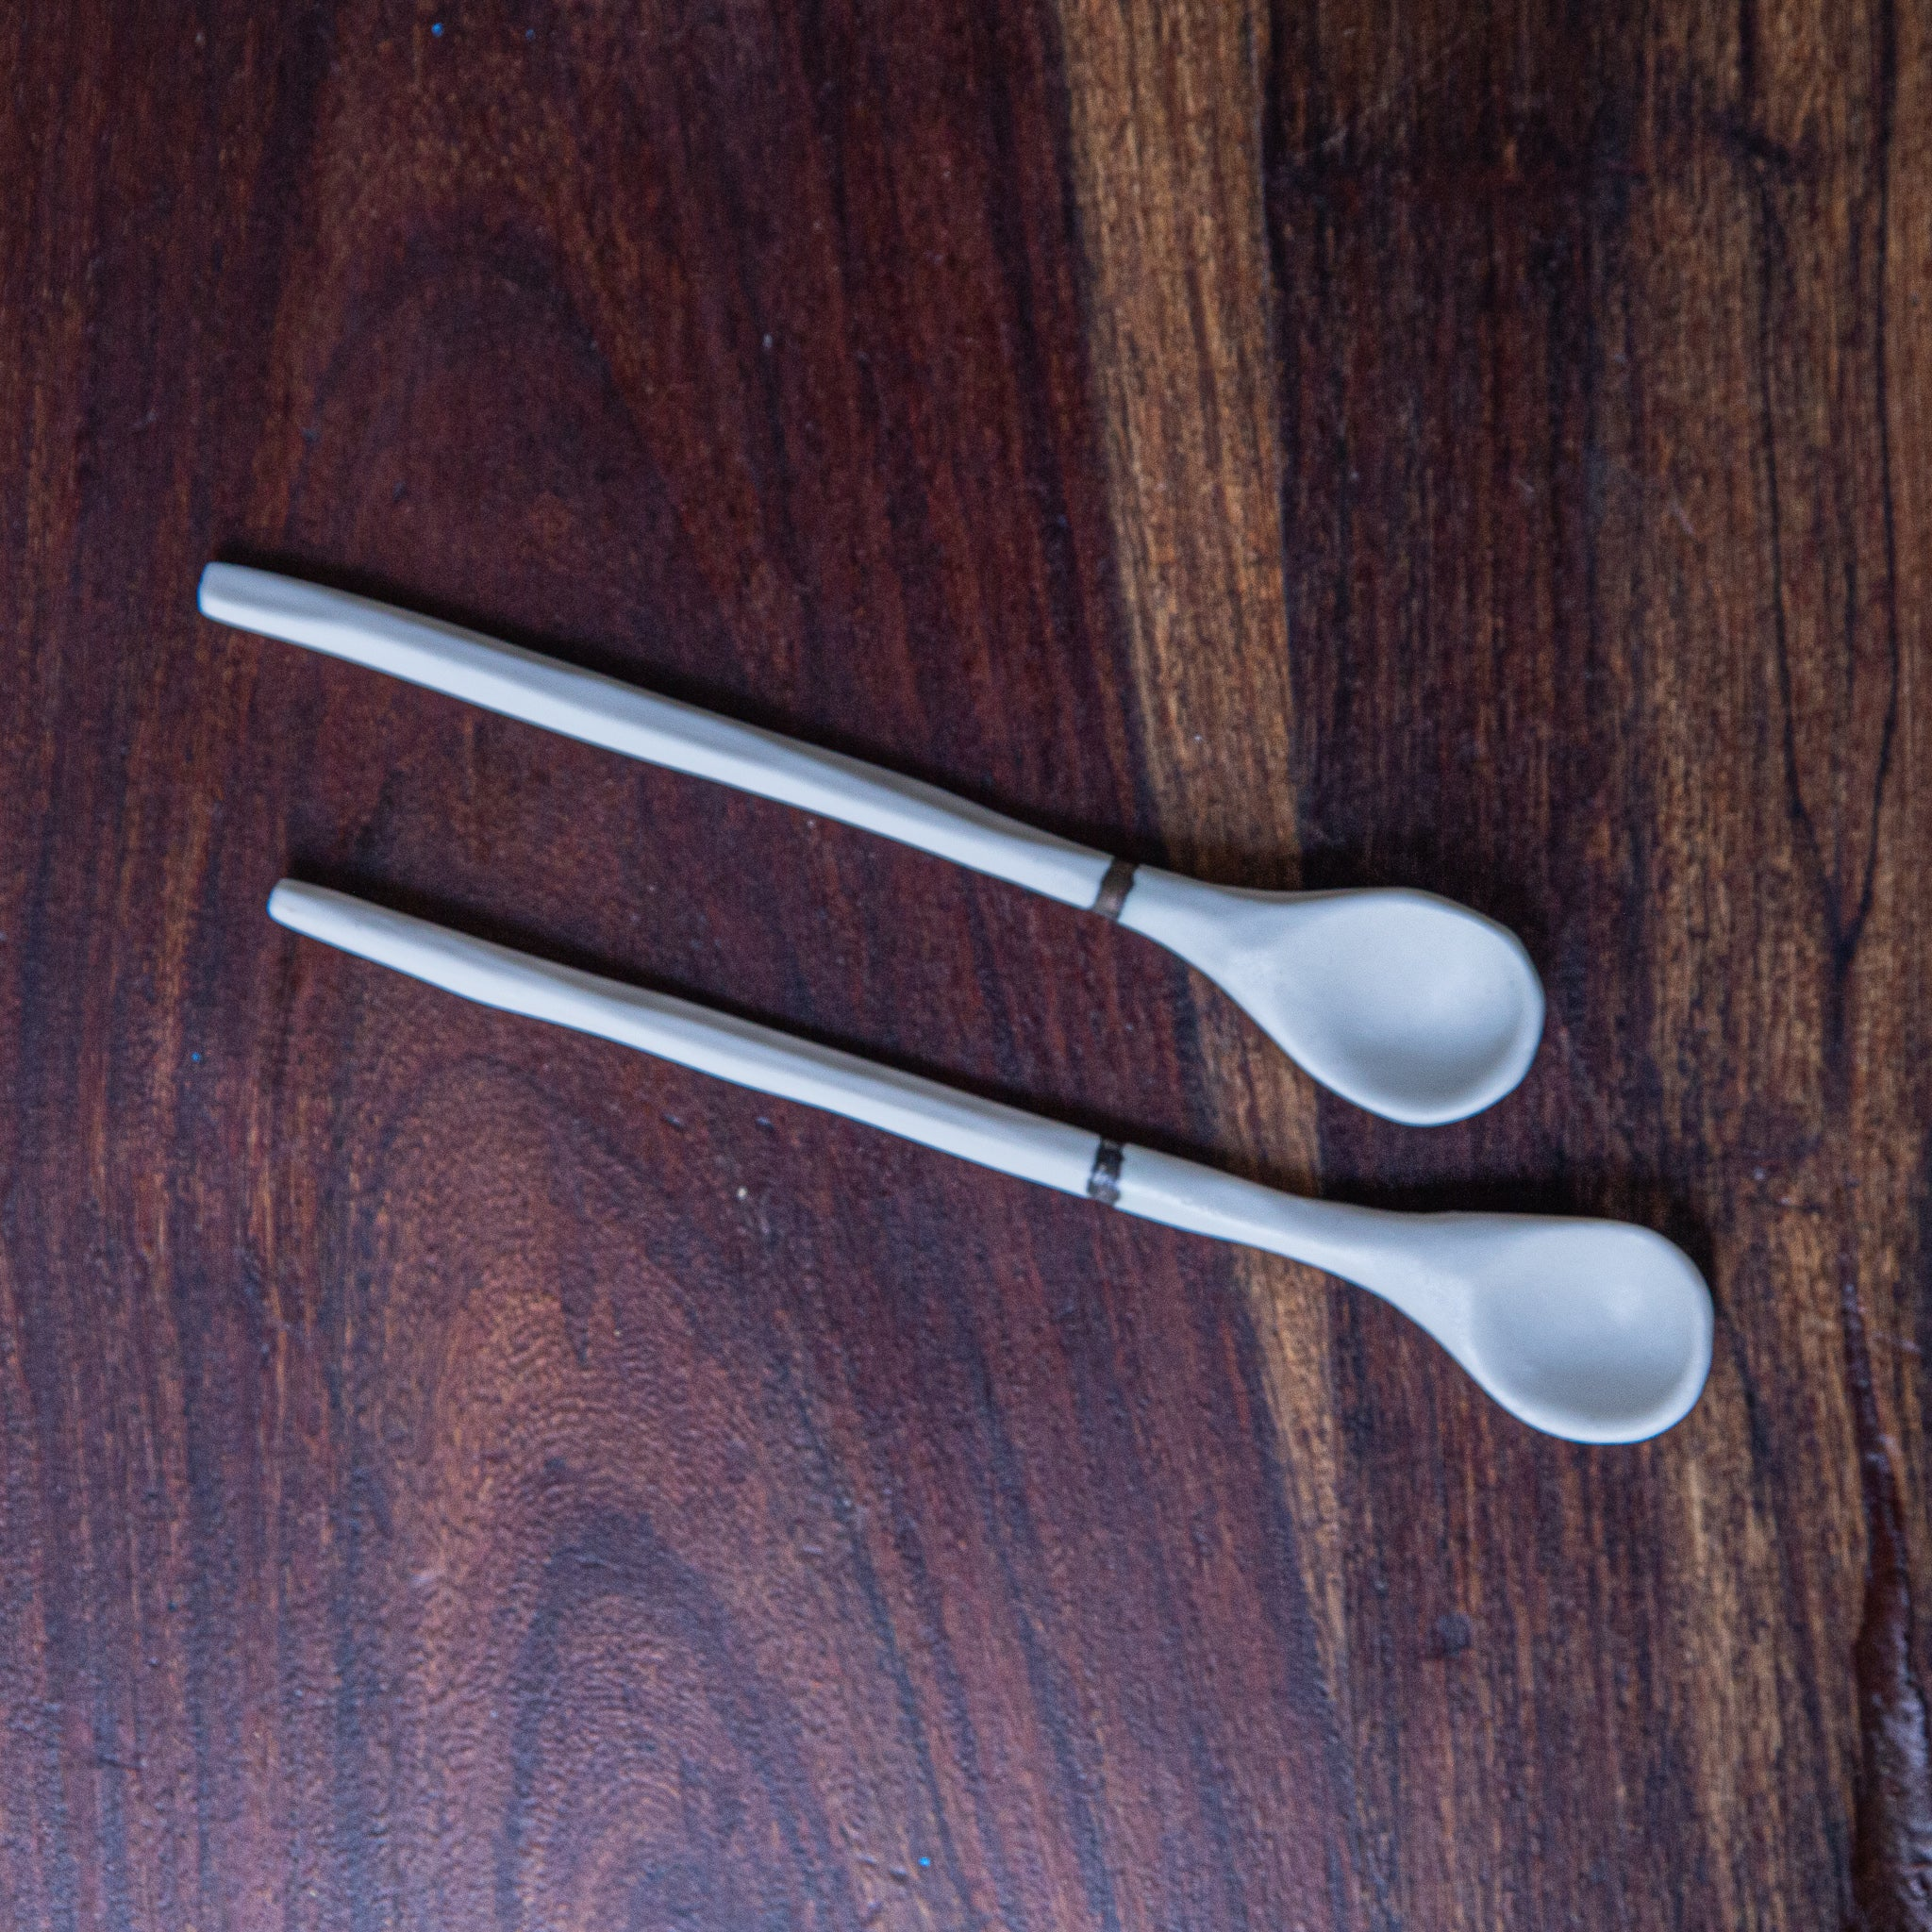 ESPRESSO CUPS AND SPOONS